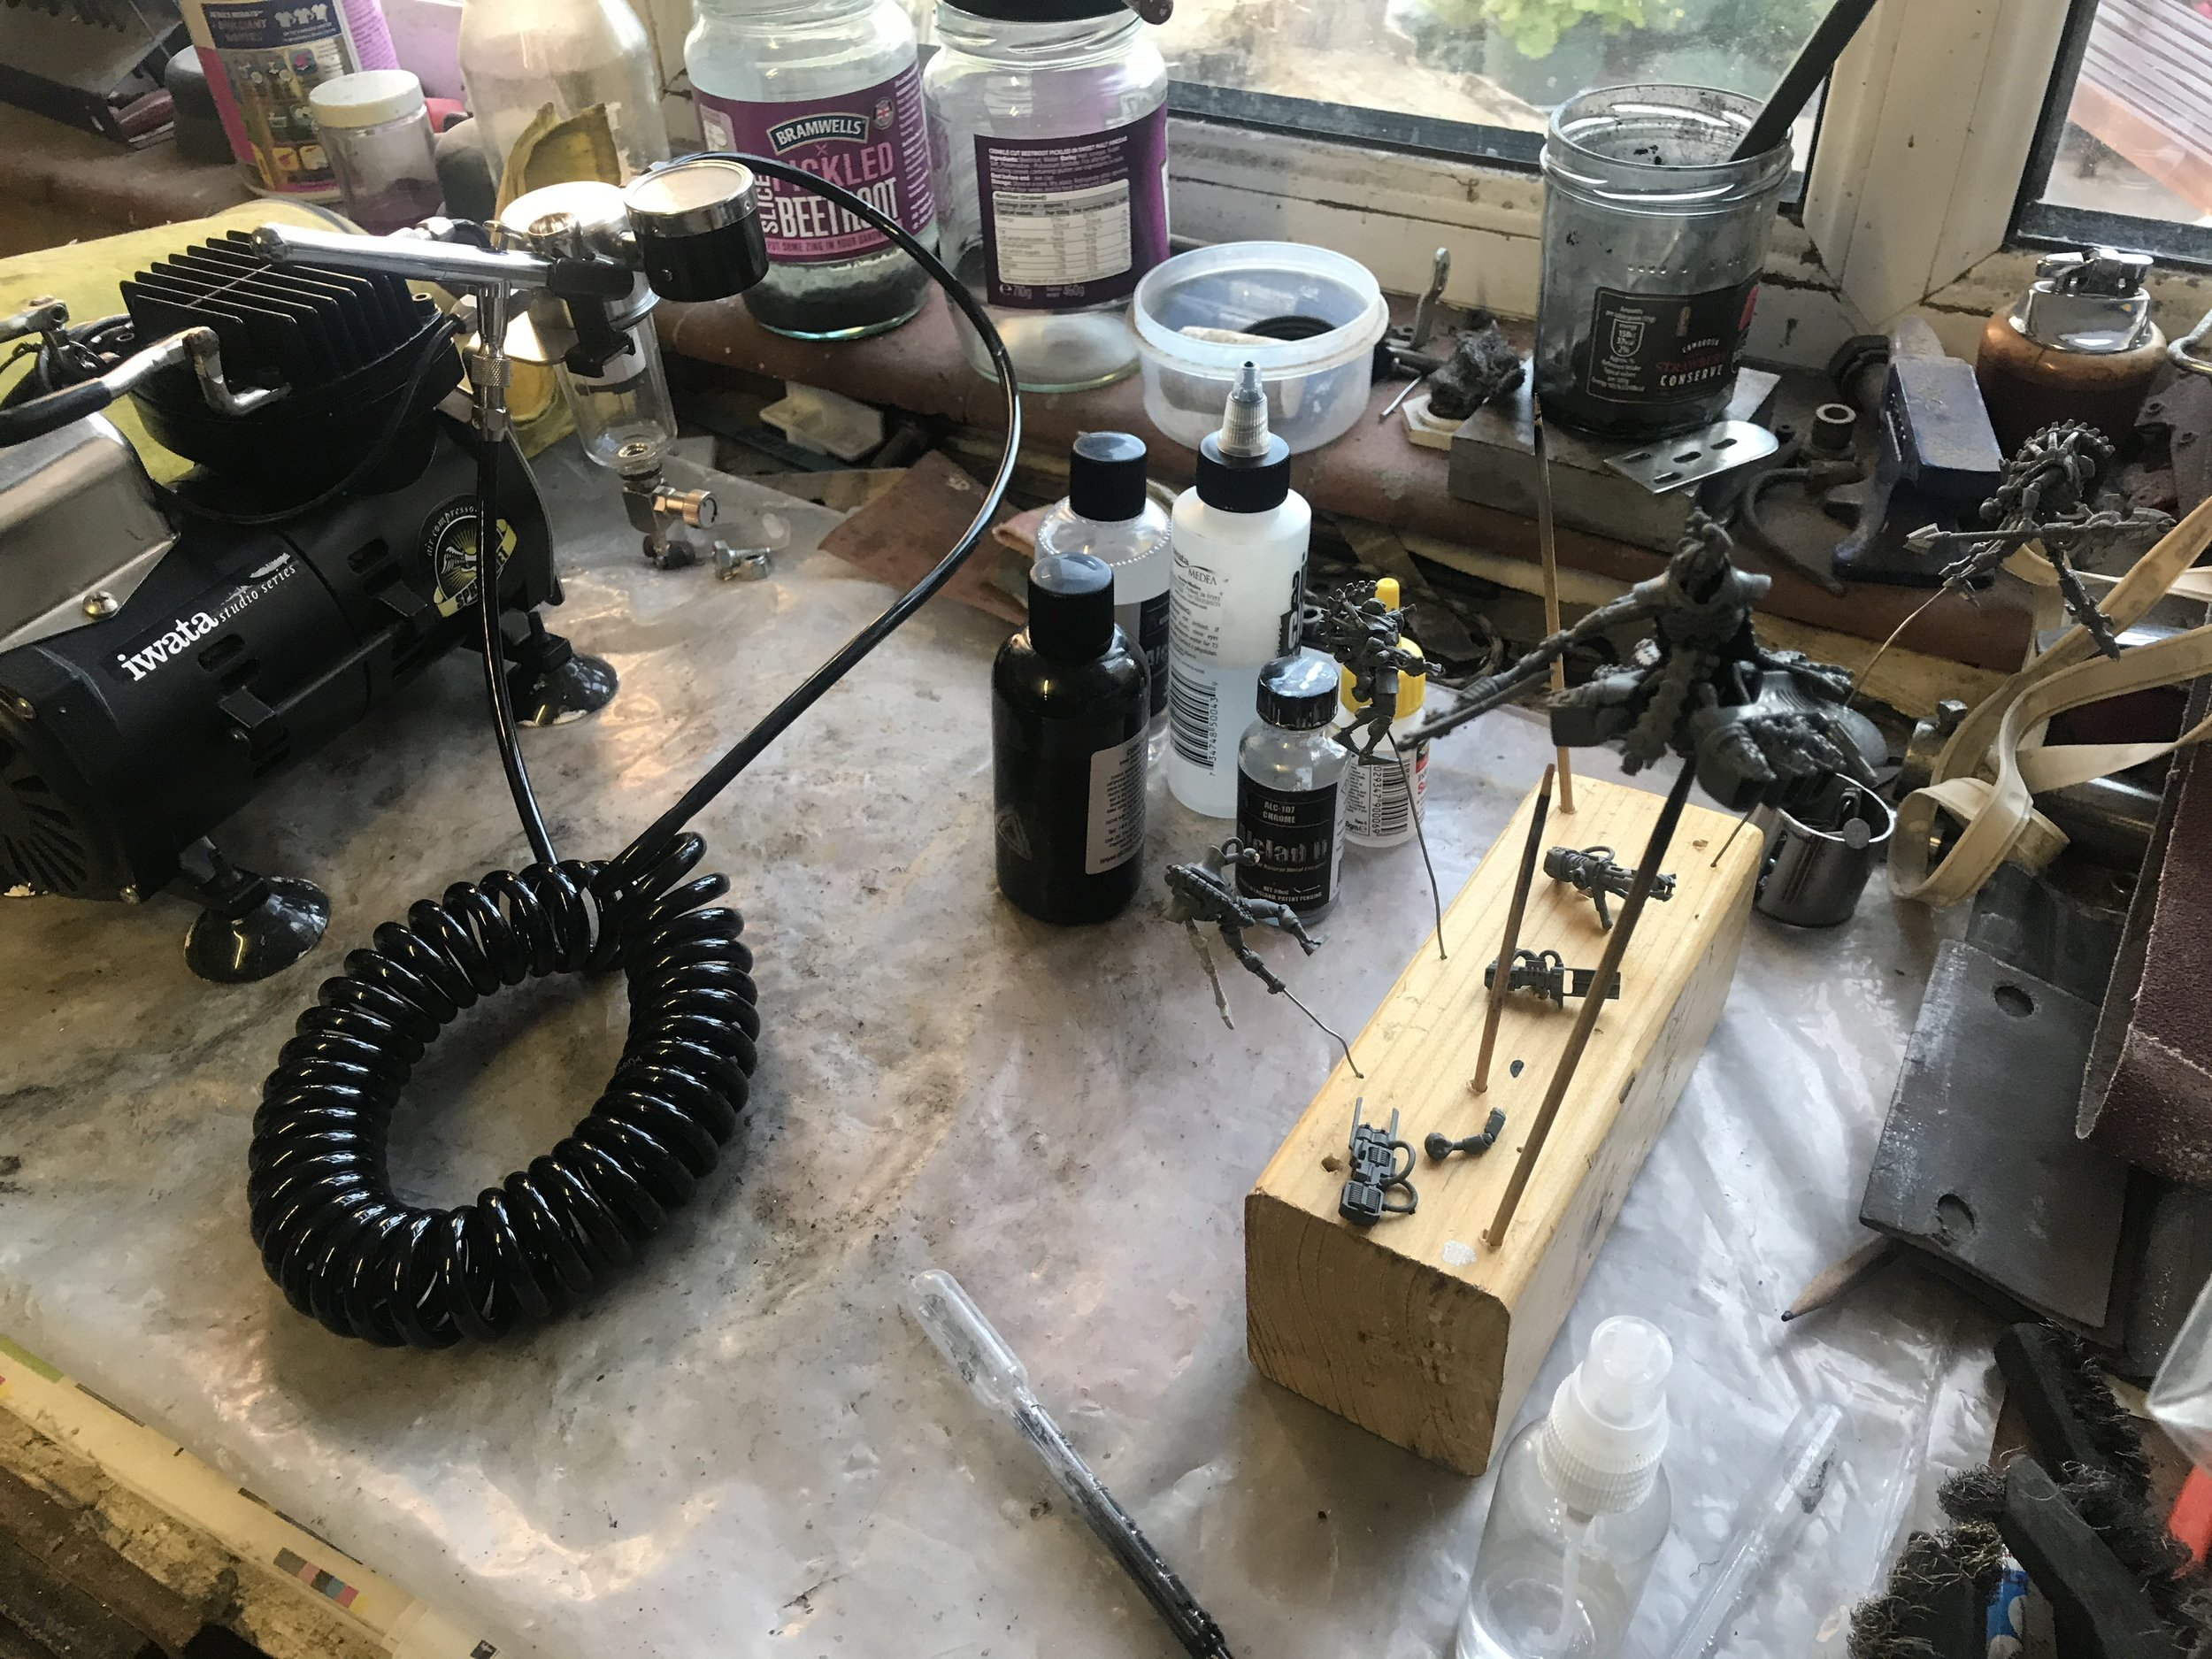 Airbrush, paints, thinners and cleaner and the models ready to be sprayed